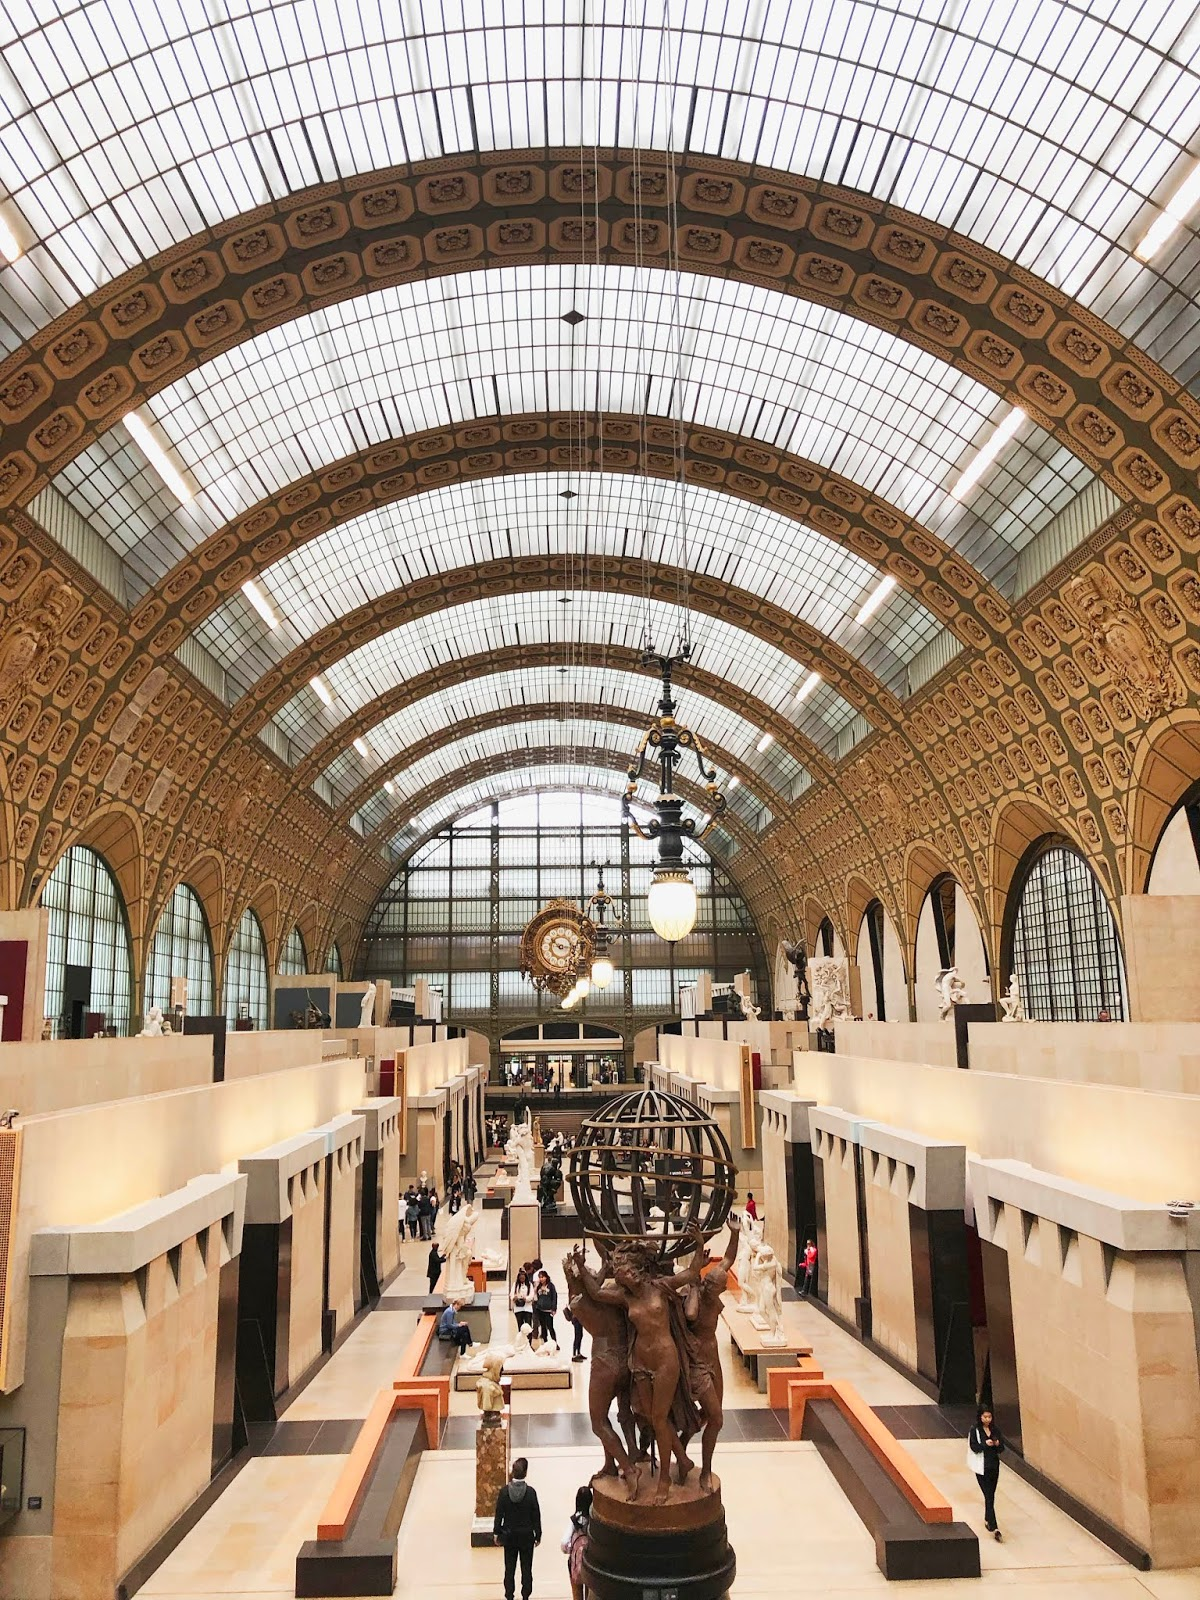 things to do in paris, paris itinerary, paris attractions